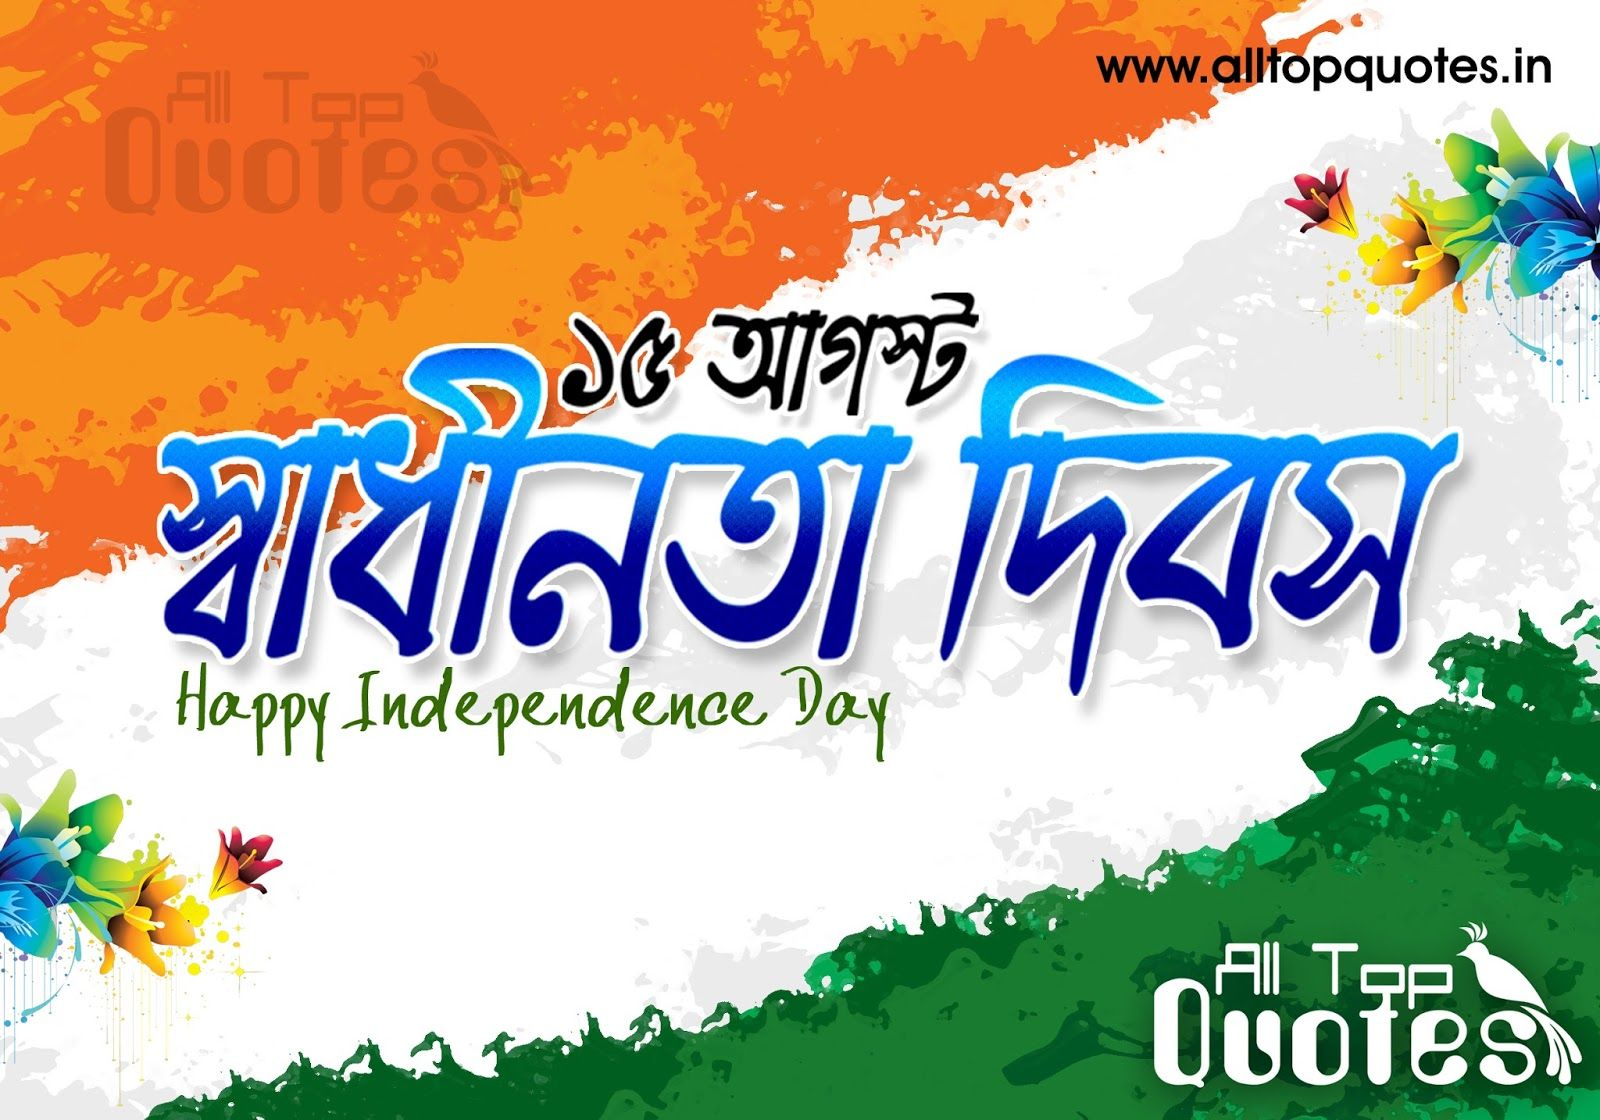 Happy independence day bengali messages all top quotes happy independence day bengali messages all top quotes kristyandbryce Gallery